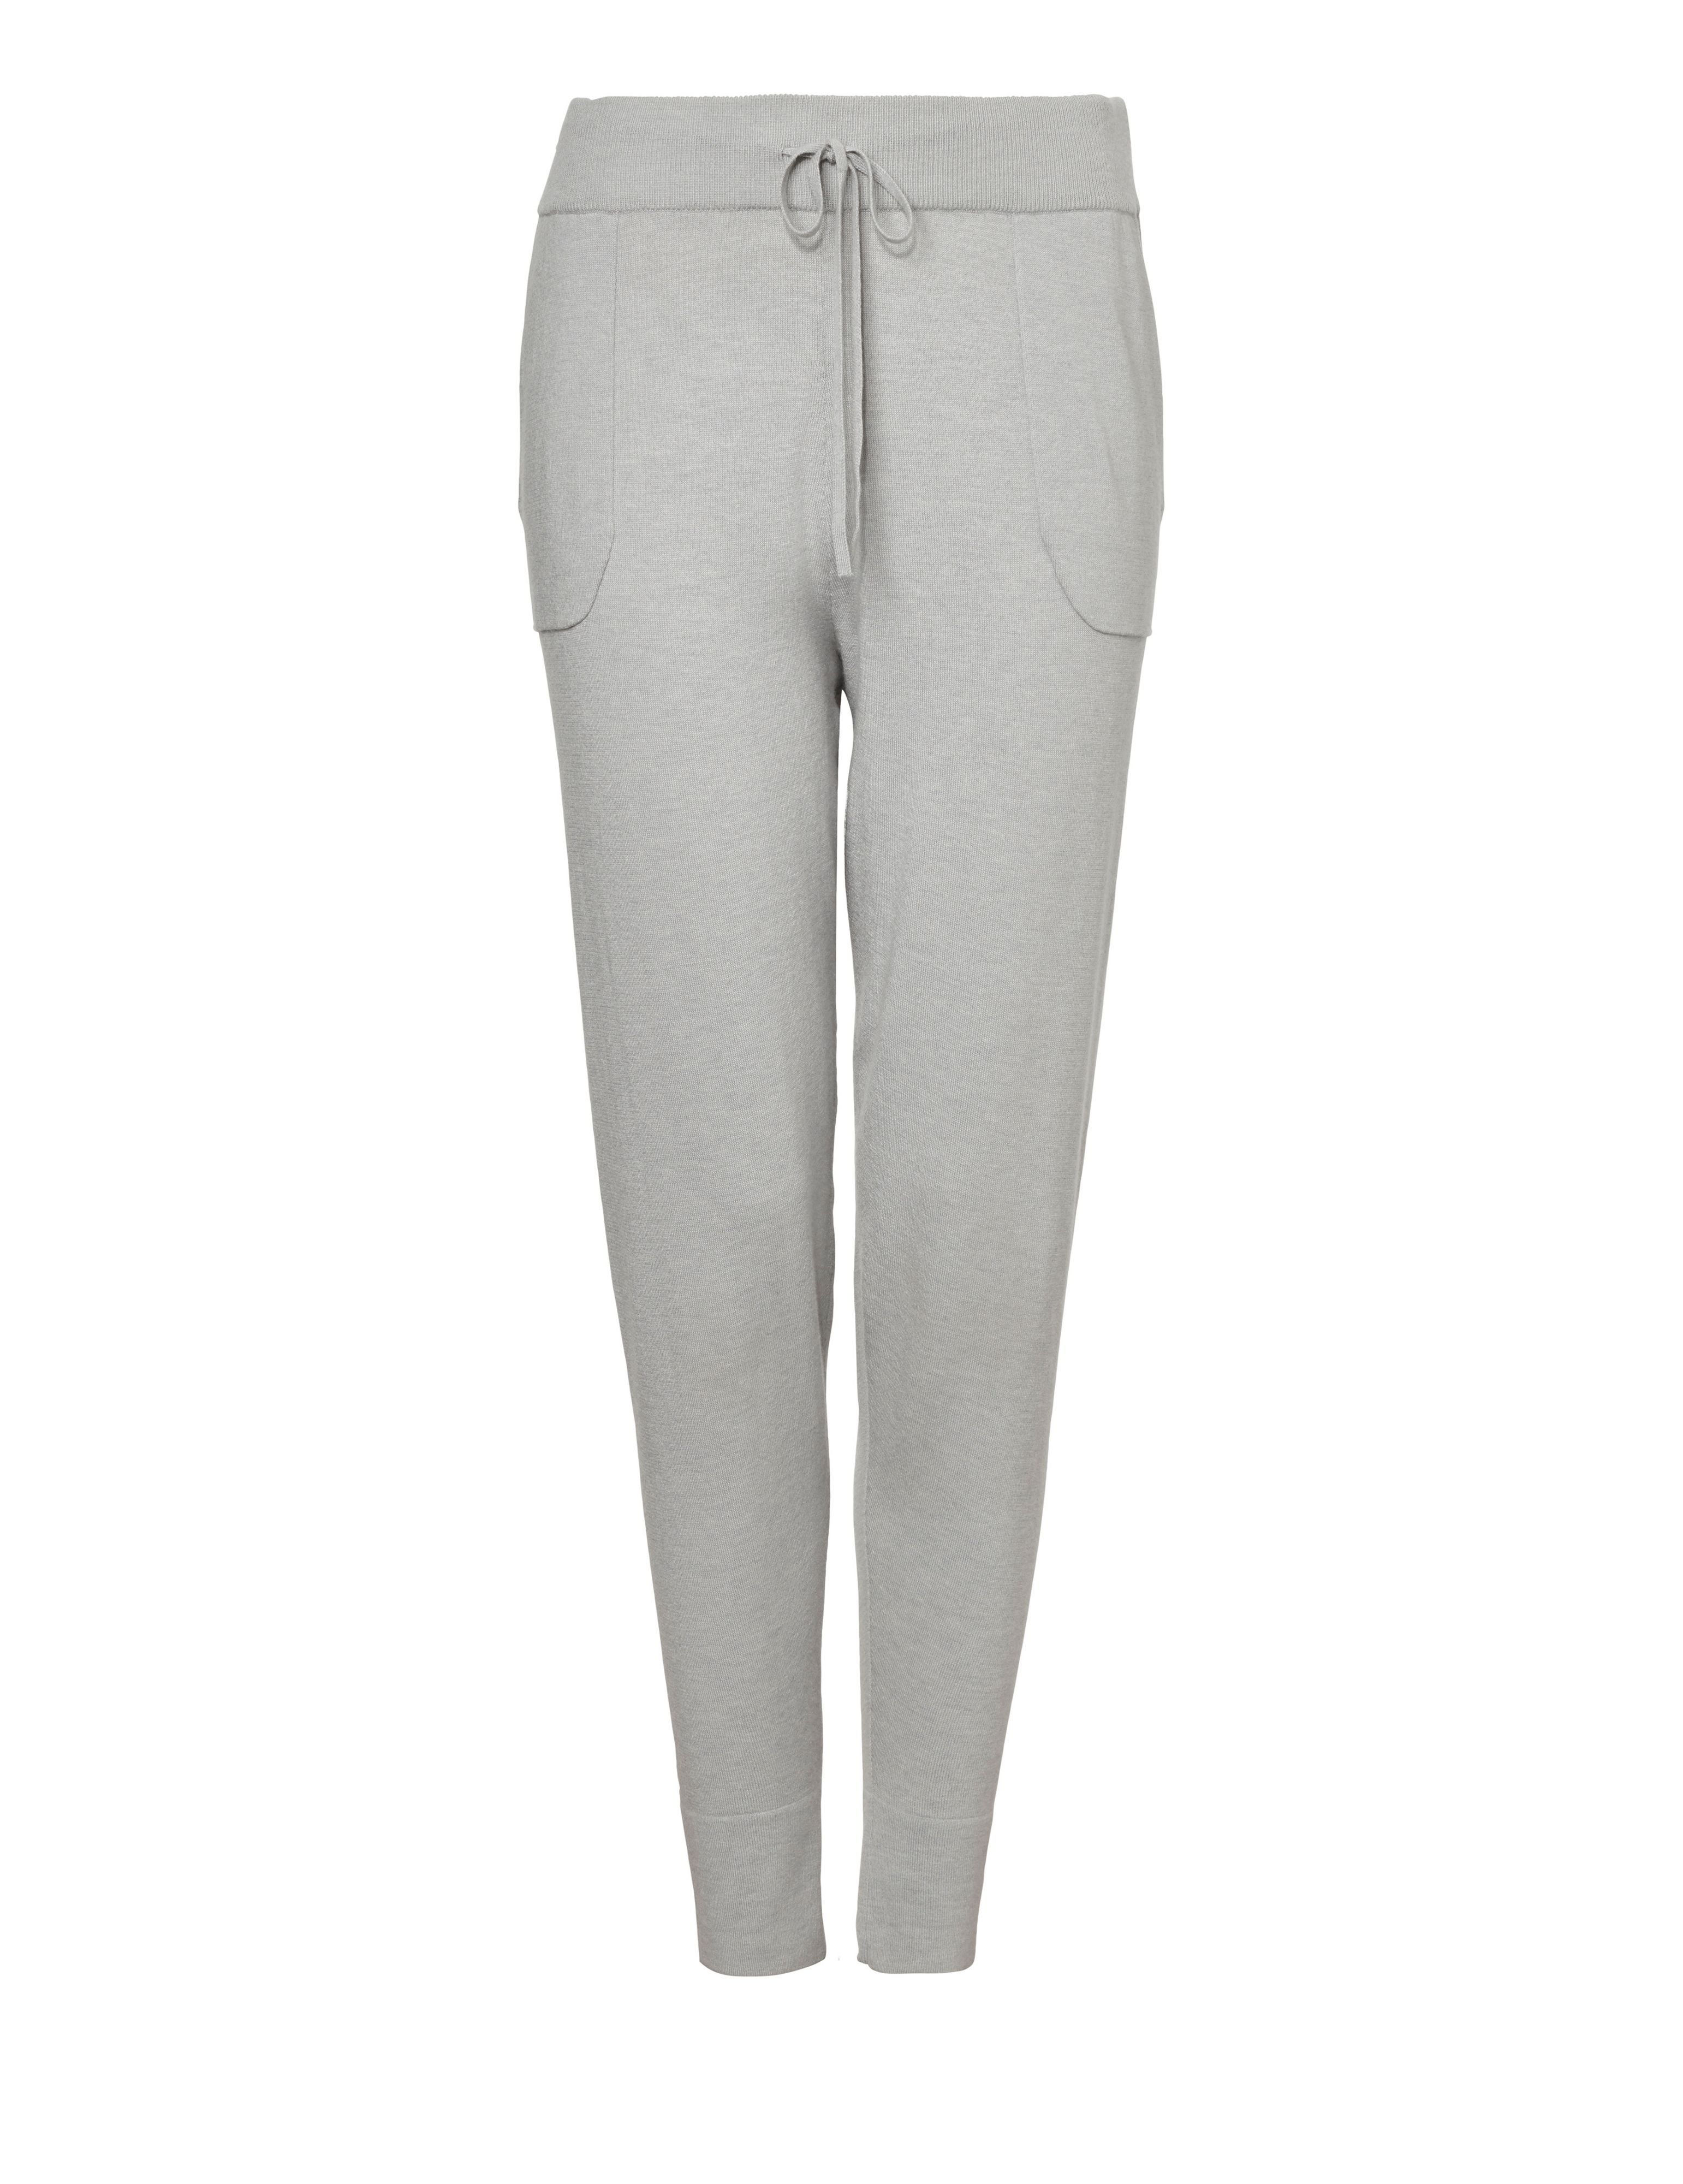 Winser London Casual Luxe Lounge Pants, Grey Marl